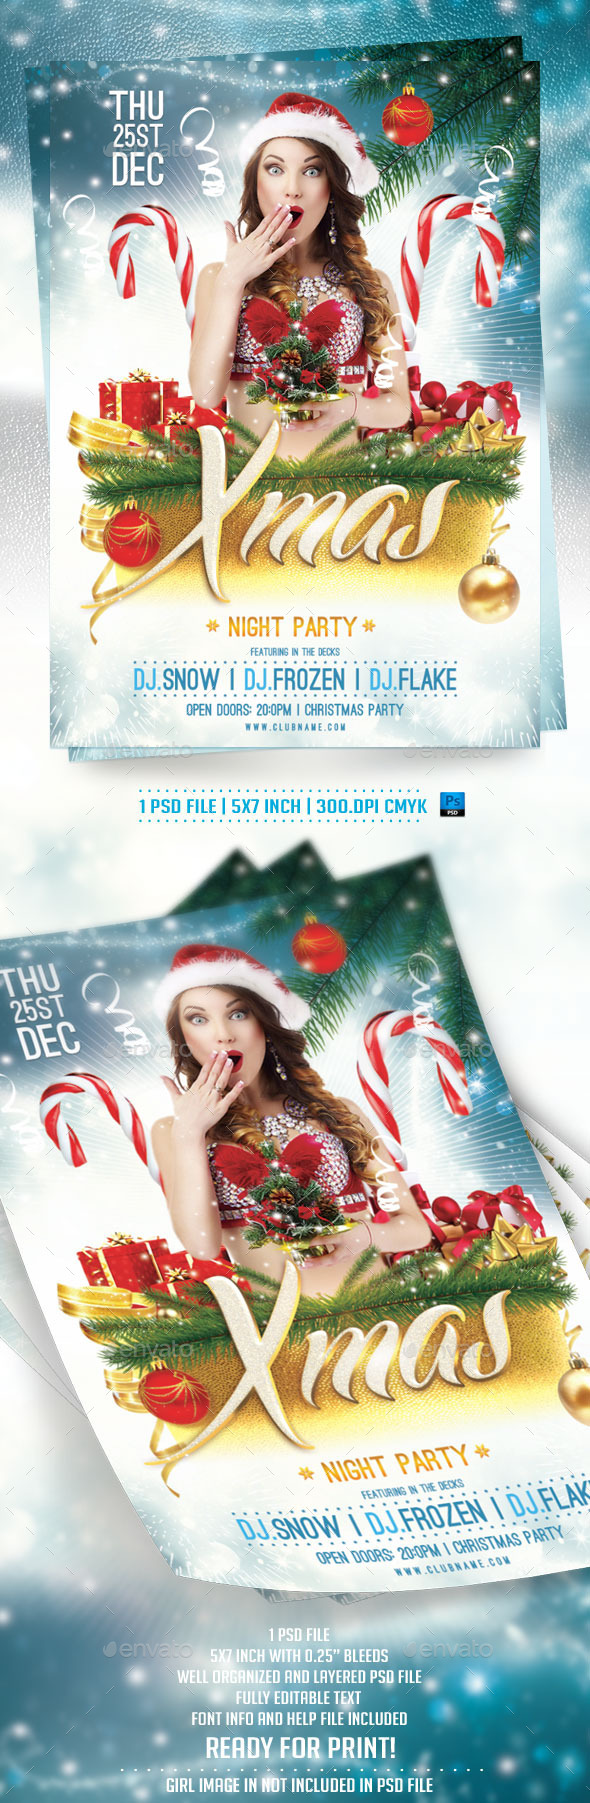 Xmas Night Party Flyer Template - Holidays Events